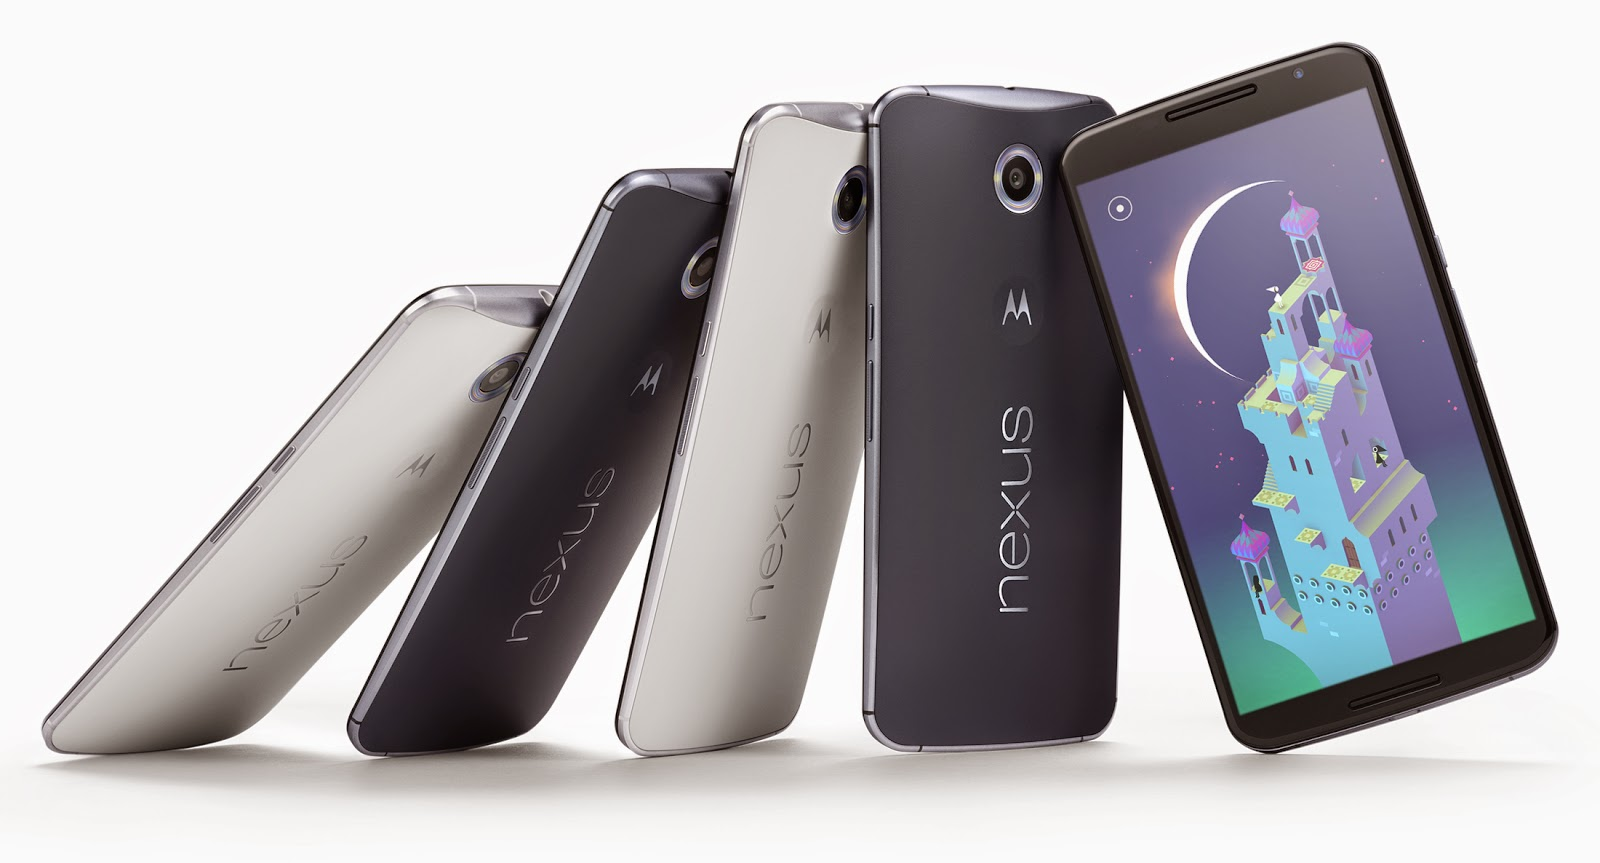 A few Nexus 6 smartphones